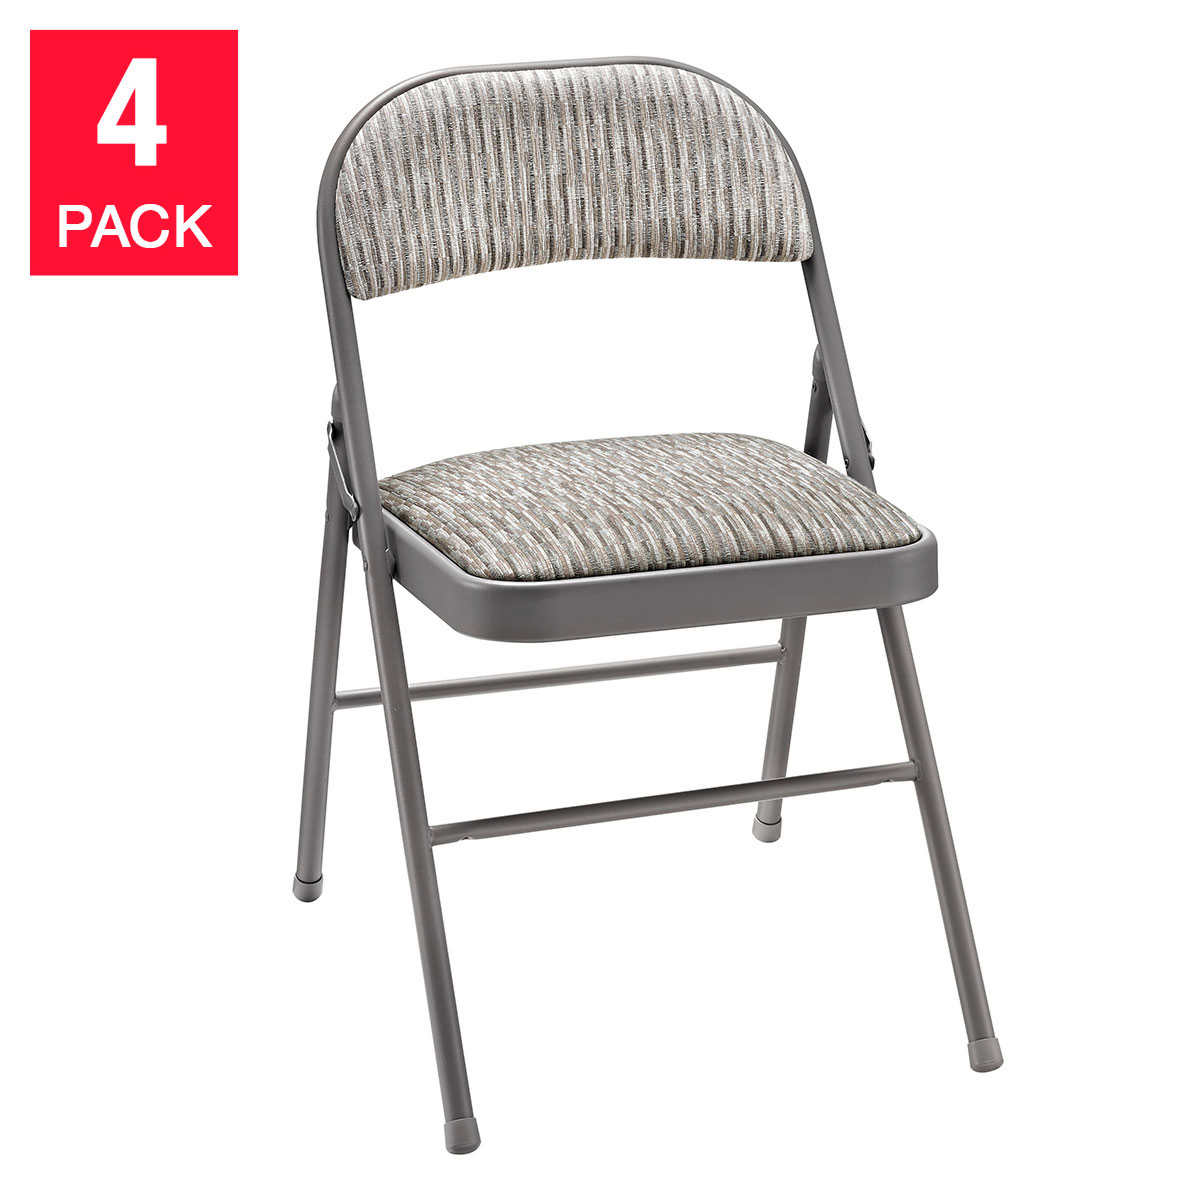 Meco Upholstered Folding Chair, 4-Pack